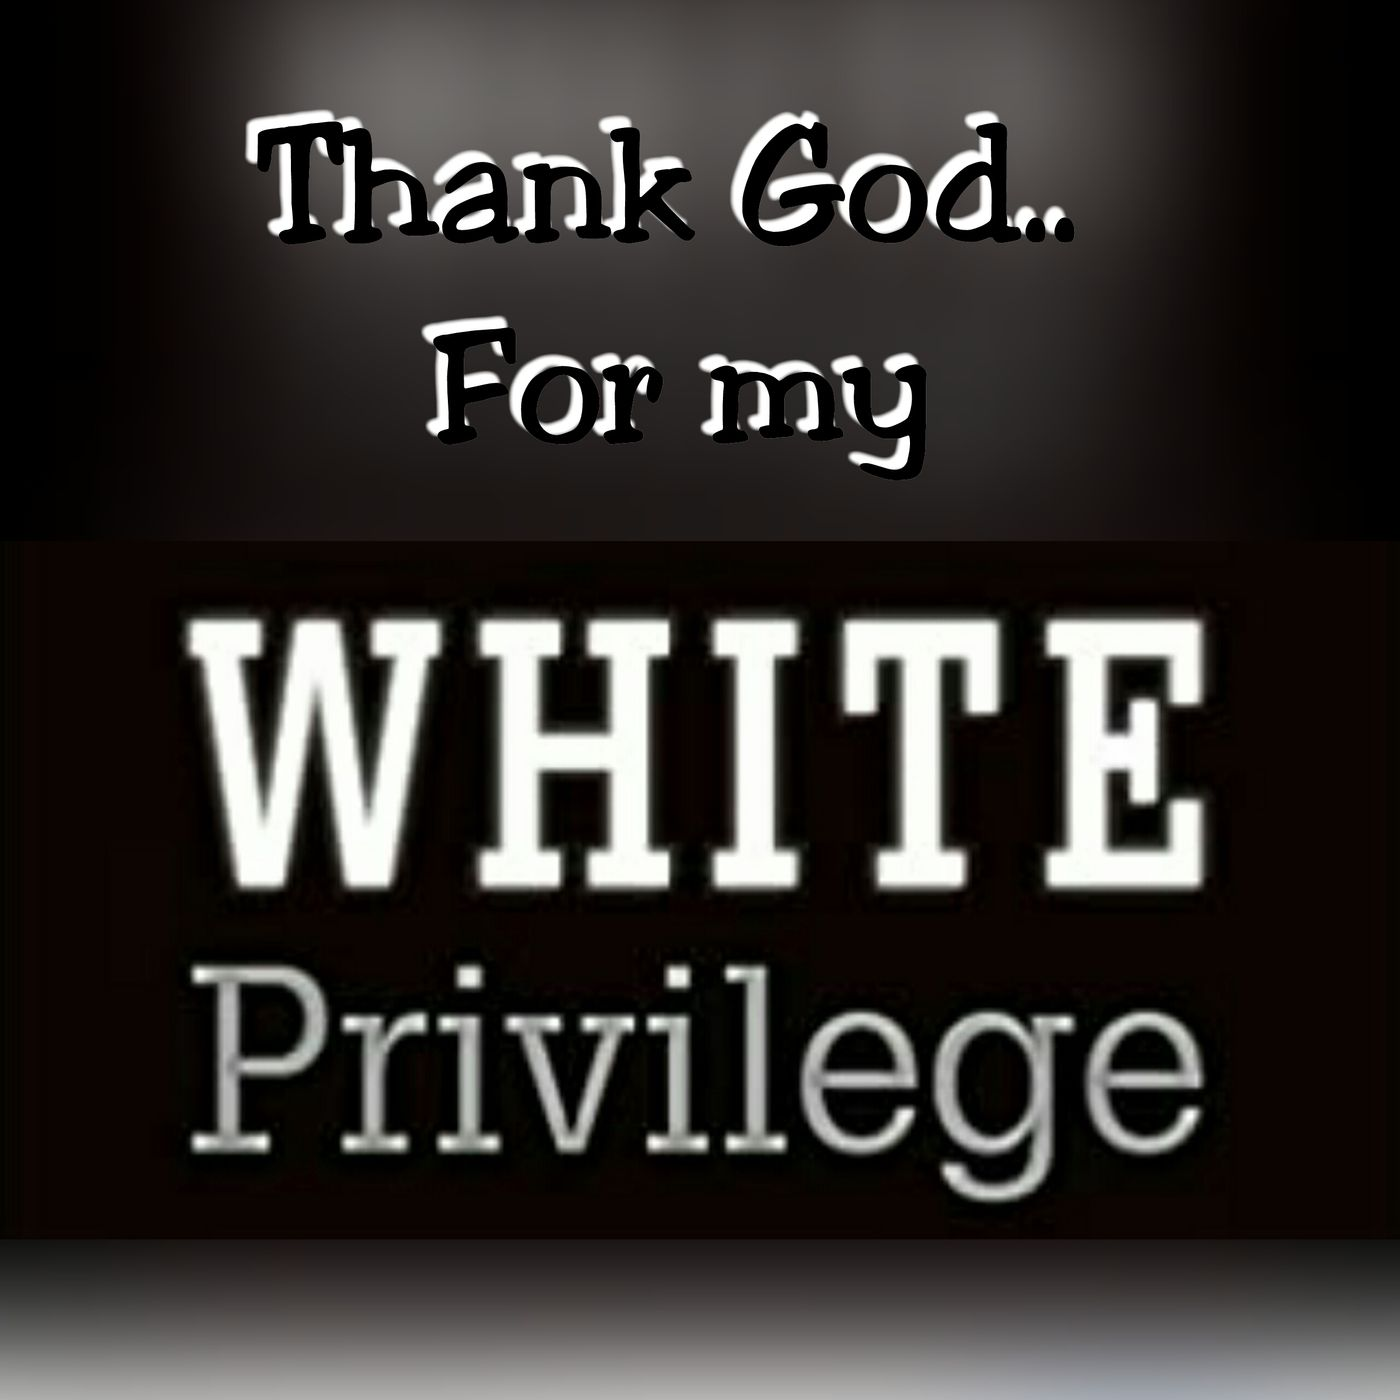 Thank God For My Privilage